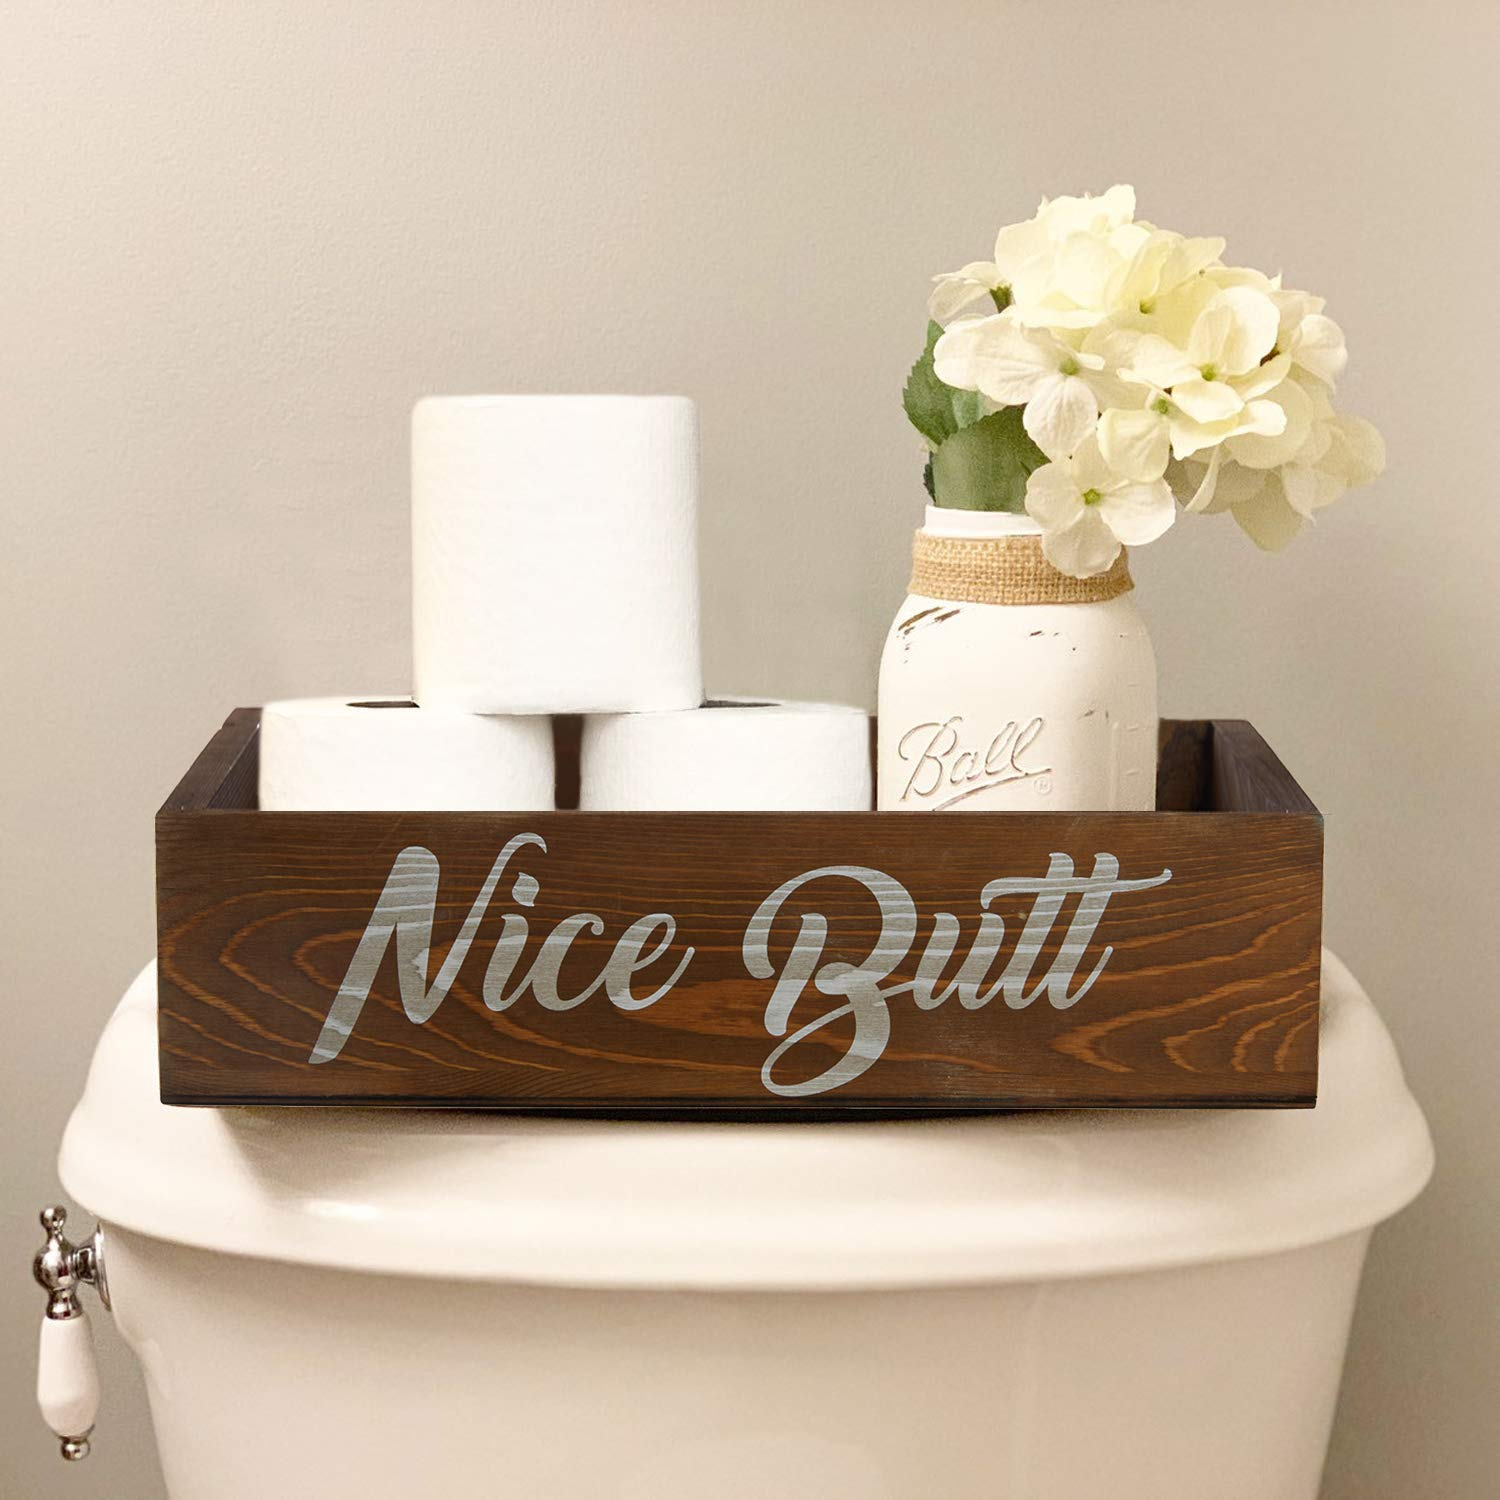 Amugo Farmhouse Bathroom Decor - Nice Butt Bathroom Decor Box - Wooden Bathroom Box, Tiolet Paper Holder, Rustic Home Decor, Funny Bathroom Decor by Amugo